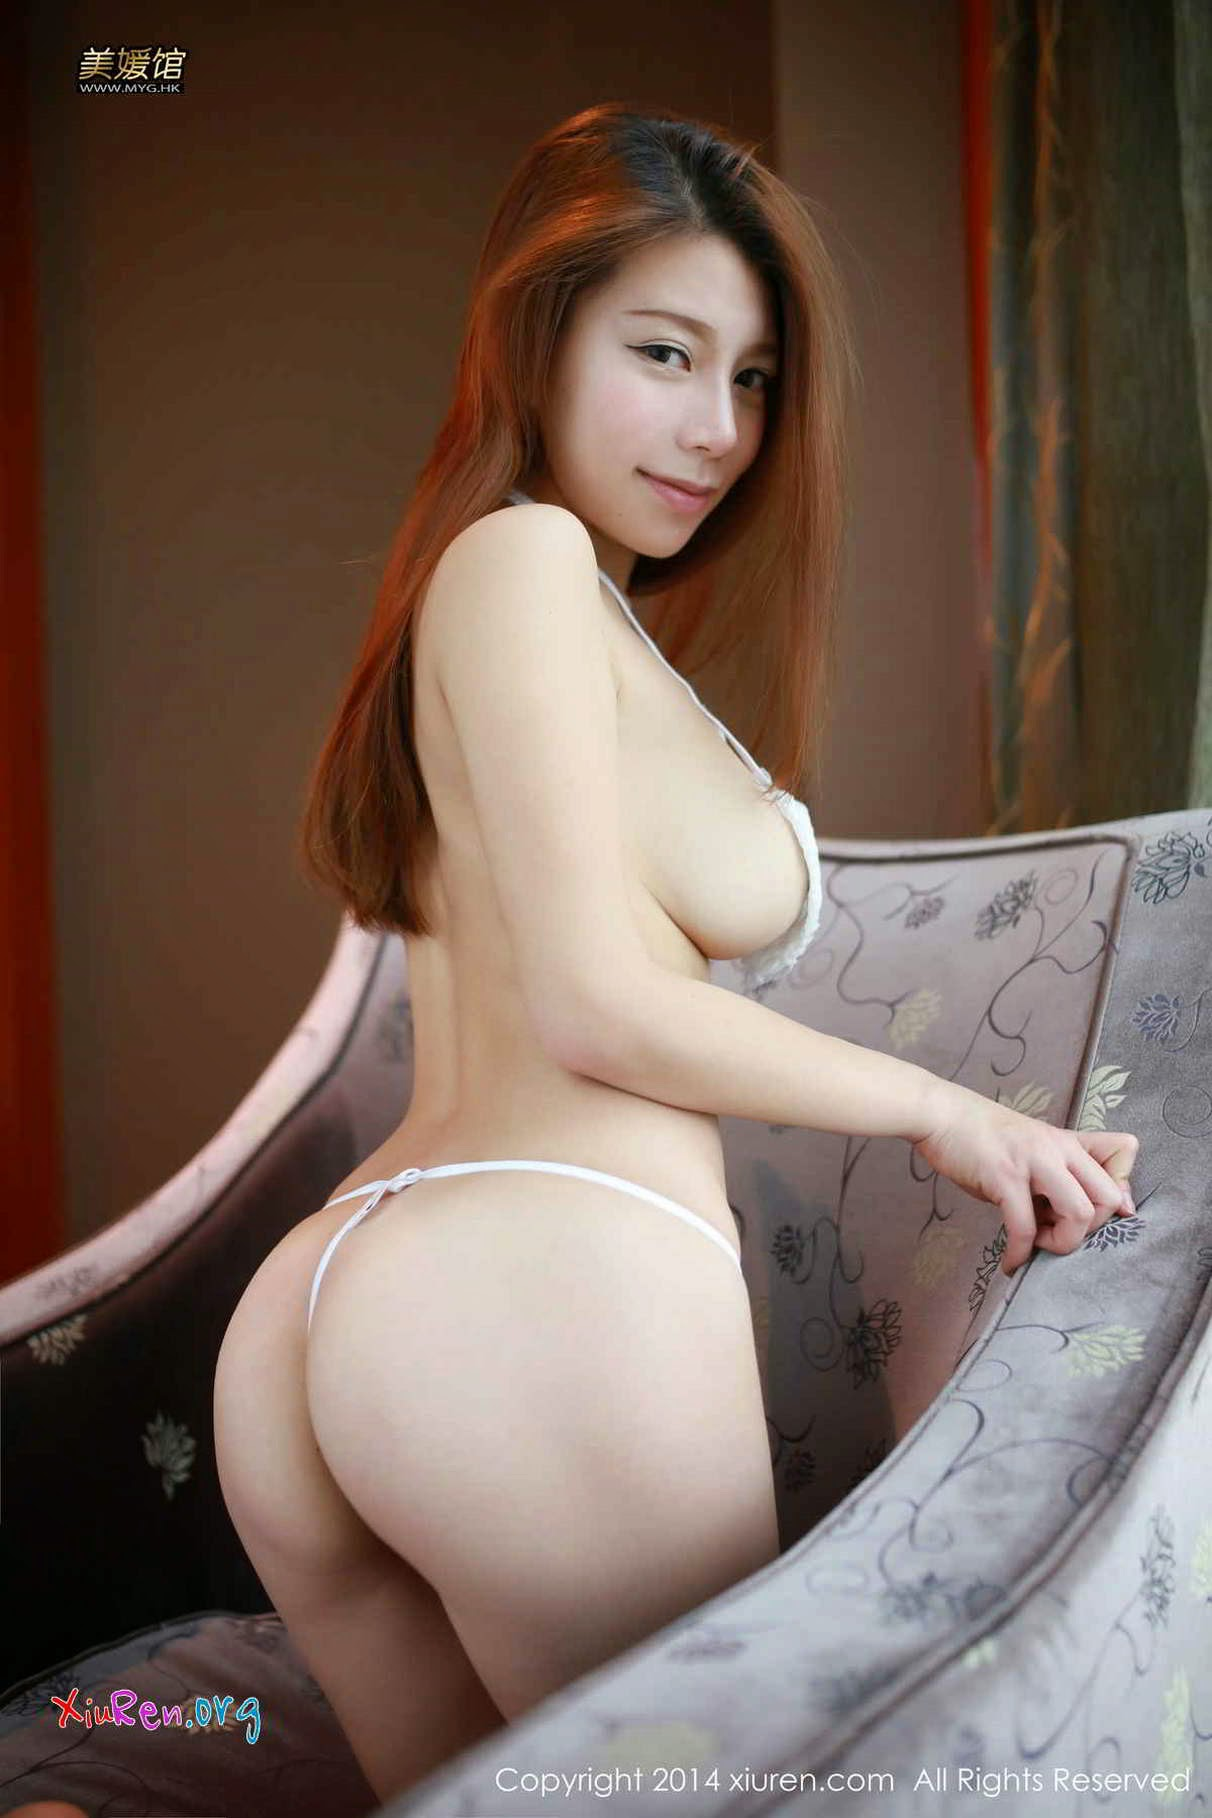 Model Vetiver Nude Photoset XiuRen — GravureGirlz